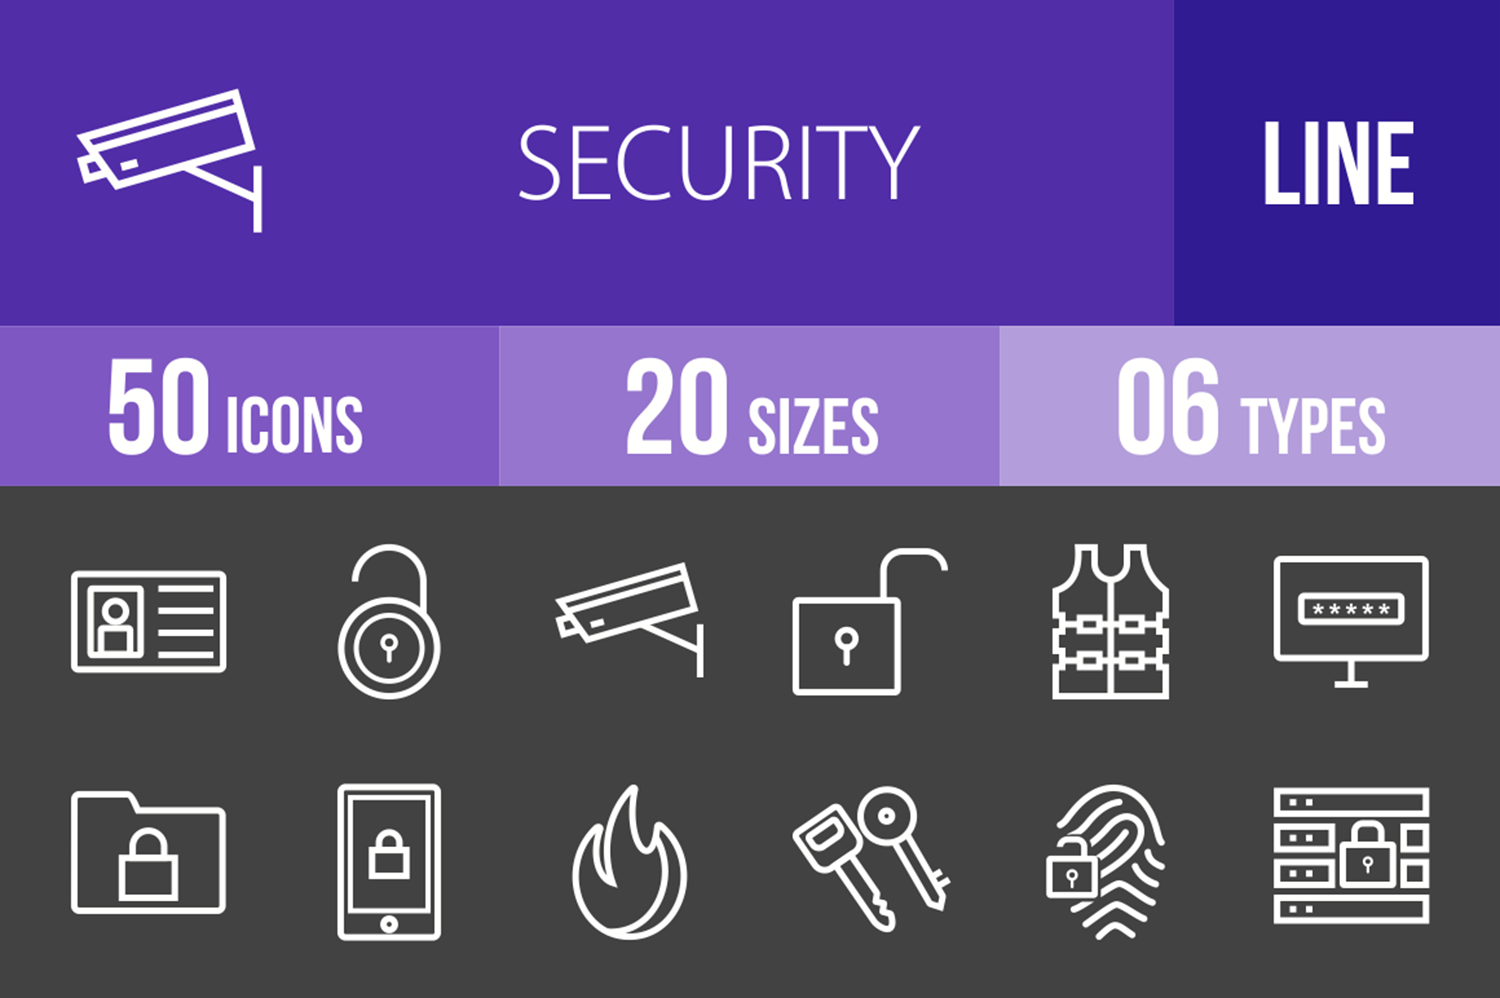 50 Security Line Inverted Icons example image 1